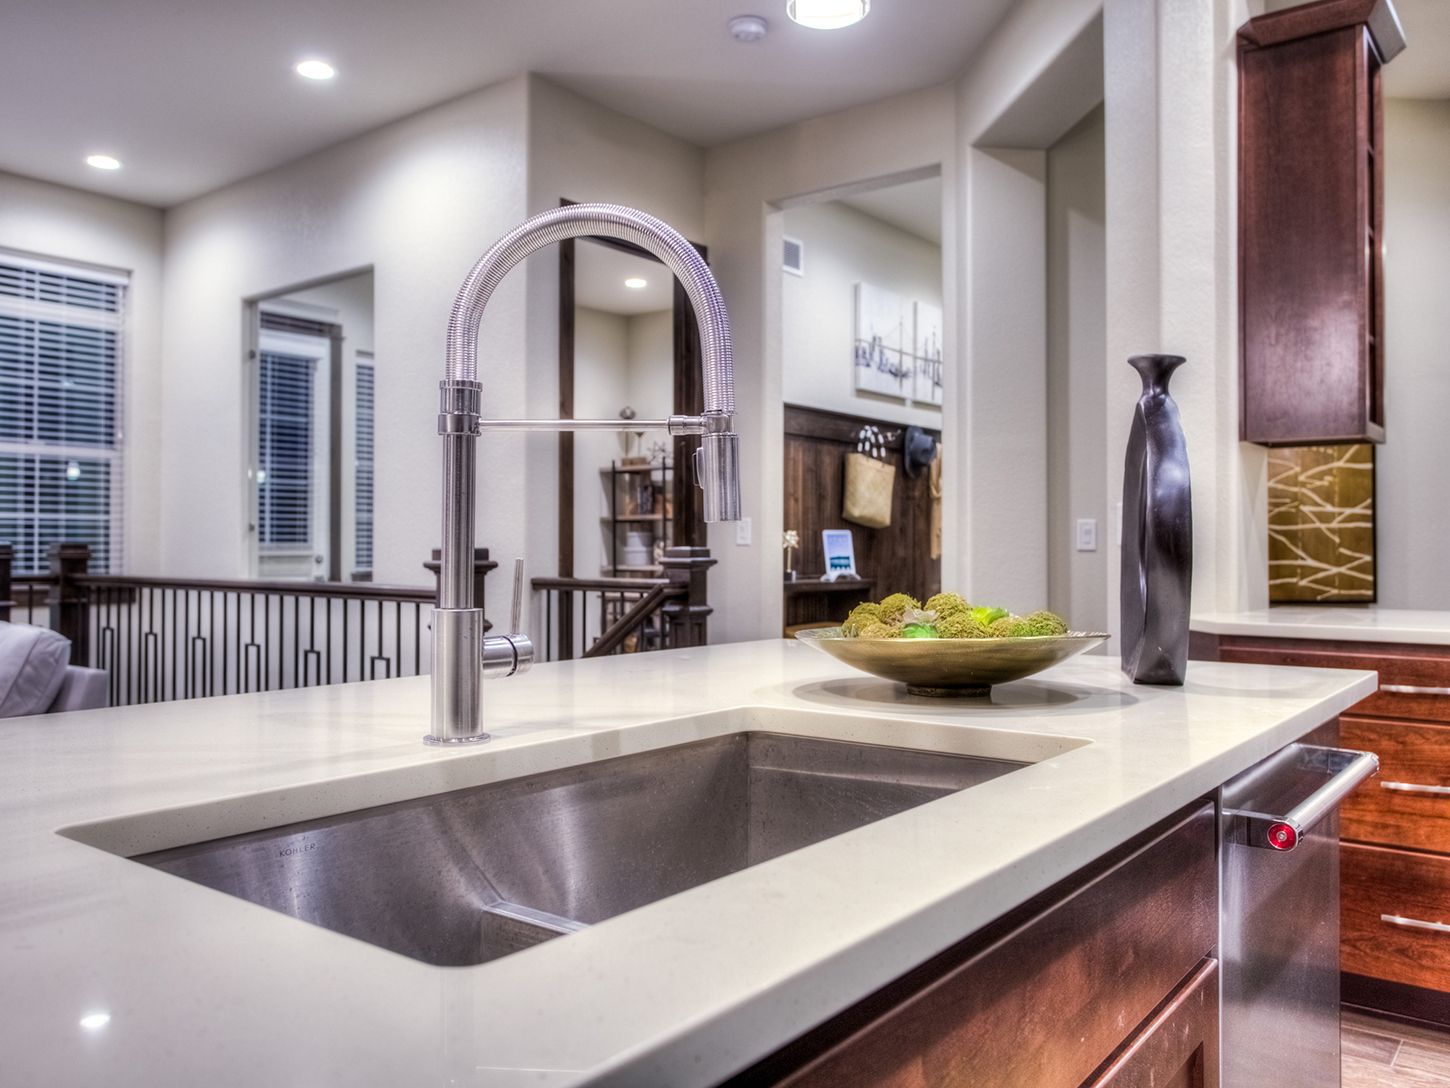 06-evergreen-fort_collins-kitchen-new_home_community